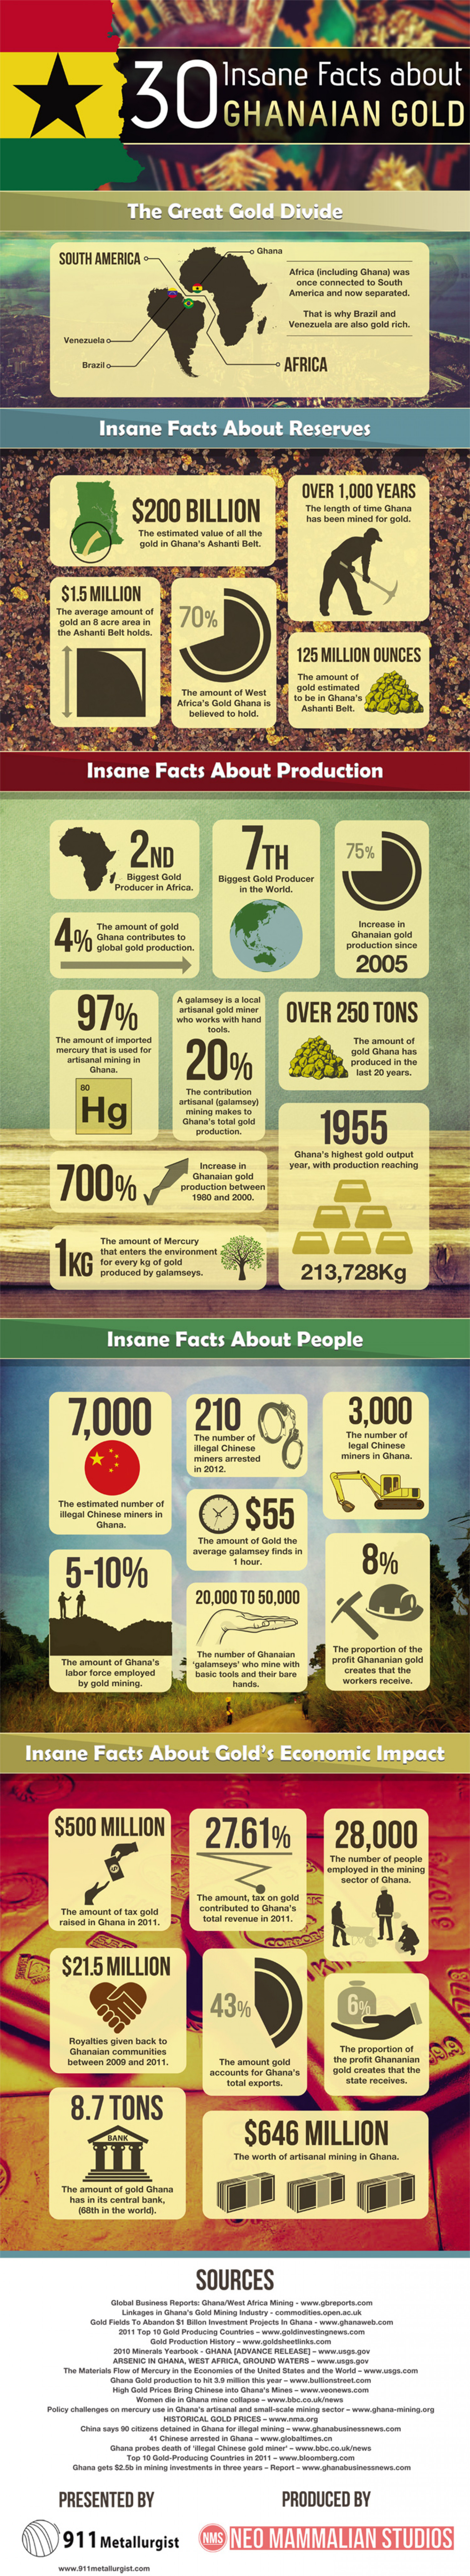 30 Insane Facts about Ghanaian Gold [Infographic] Infographic